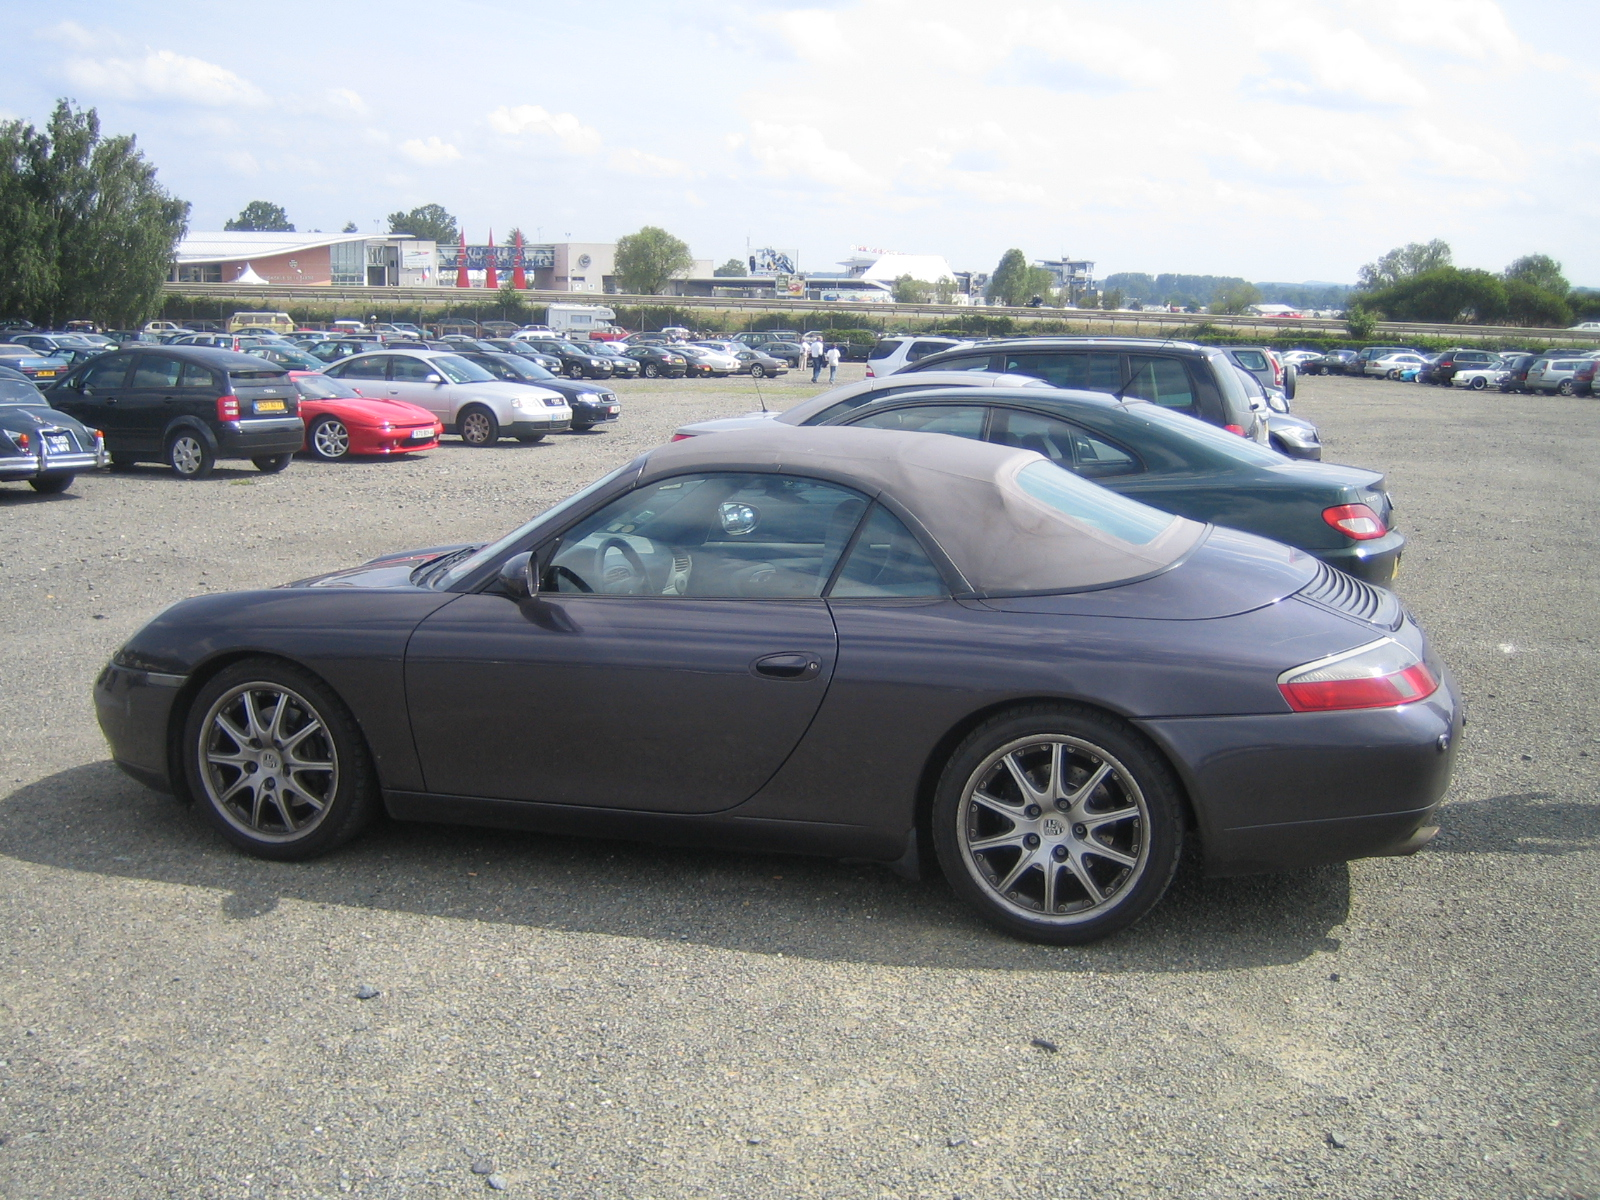 2000 new 9/11 pictures Used Porsche 911 For Sale - CarGurus